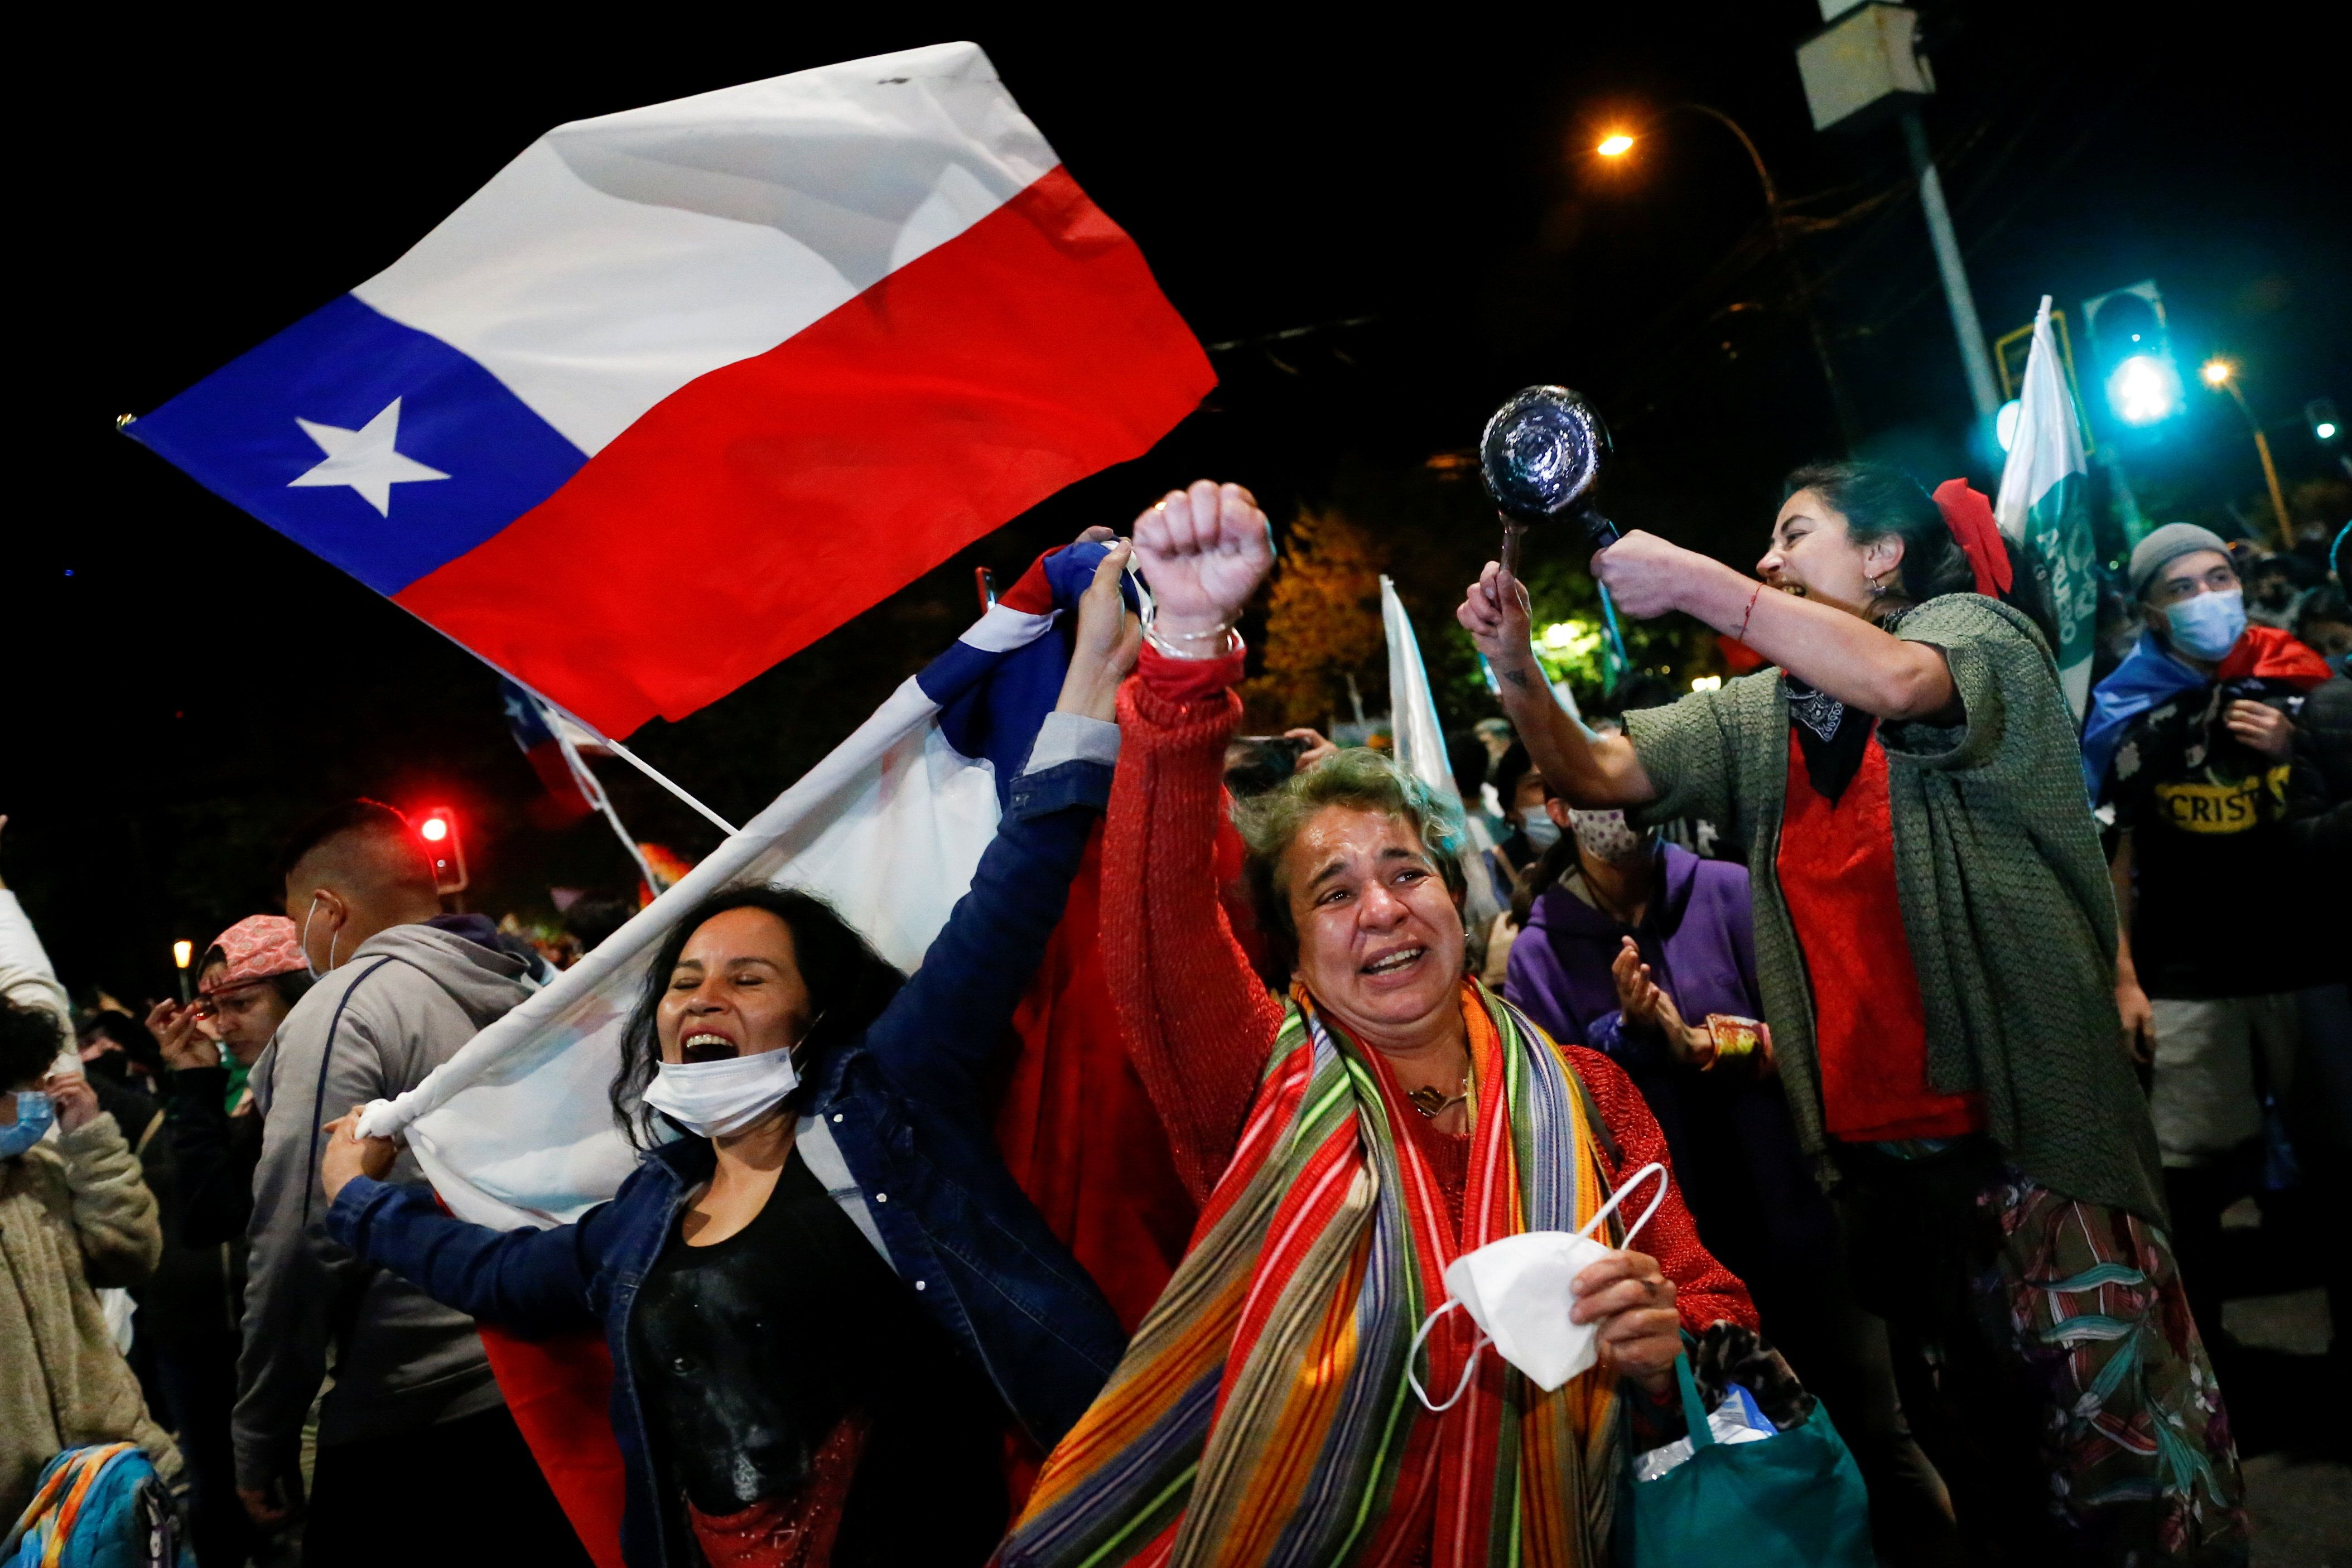 """A """"yes"""" supporter reacts to the result of Chile's national referendum on a new constitution in Valparaíso. Reuters"""